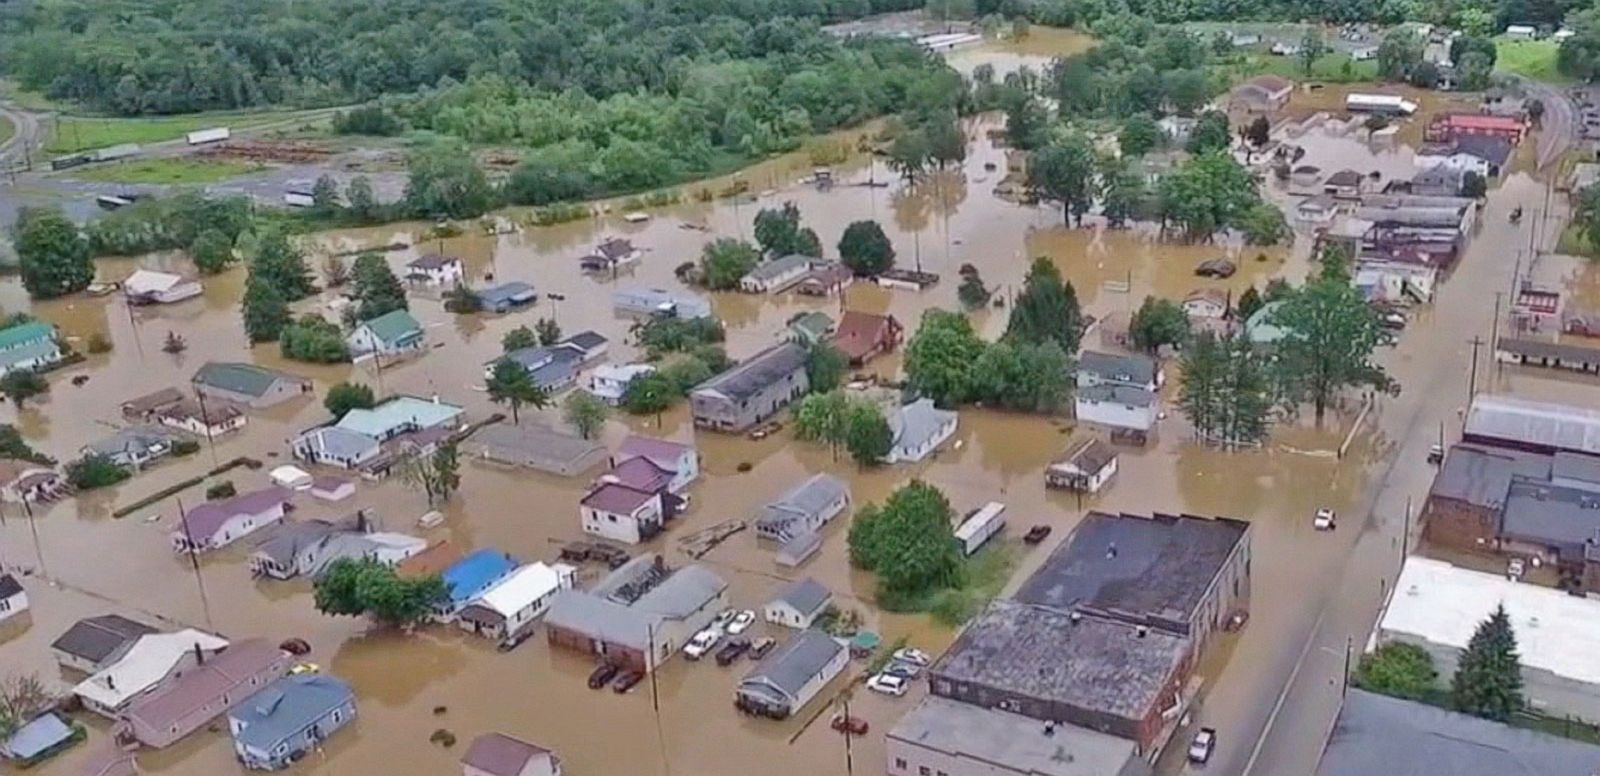 VIDEO: Rescue Efforts Underway in West Virginia After Deadly Flooding